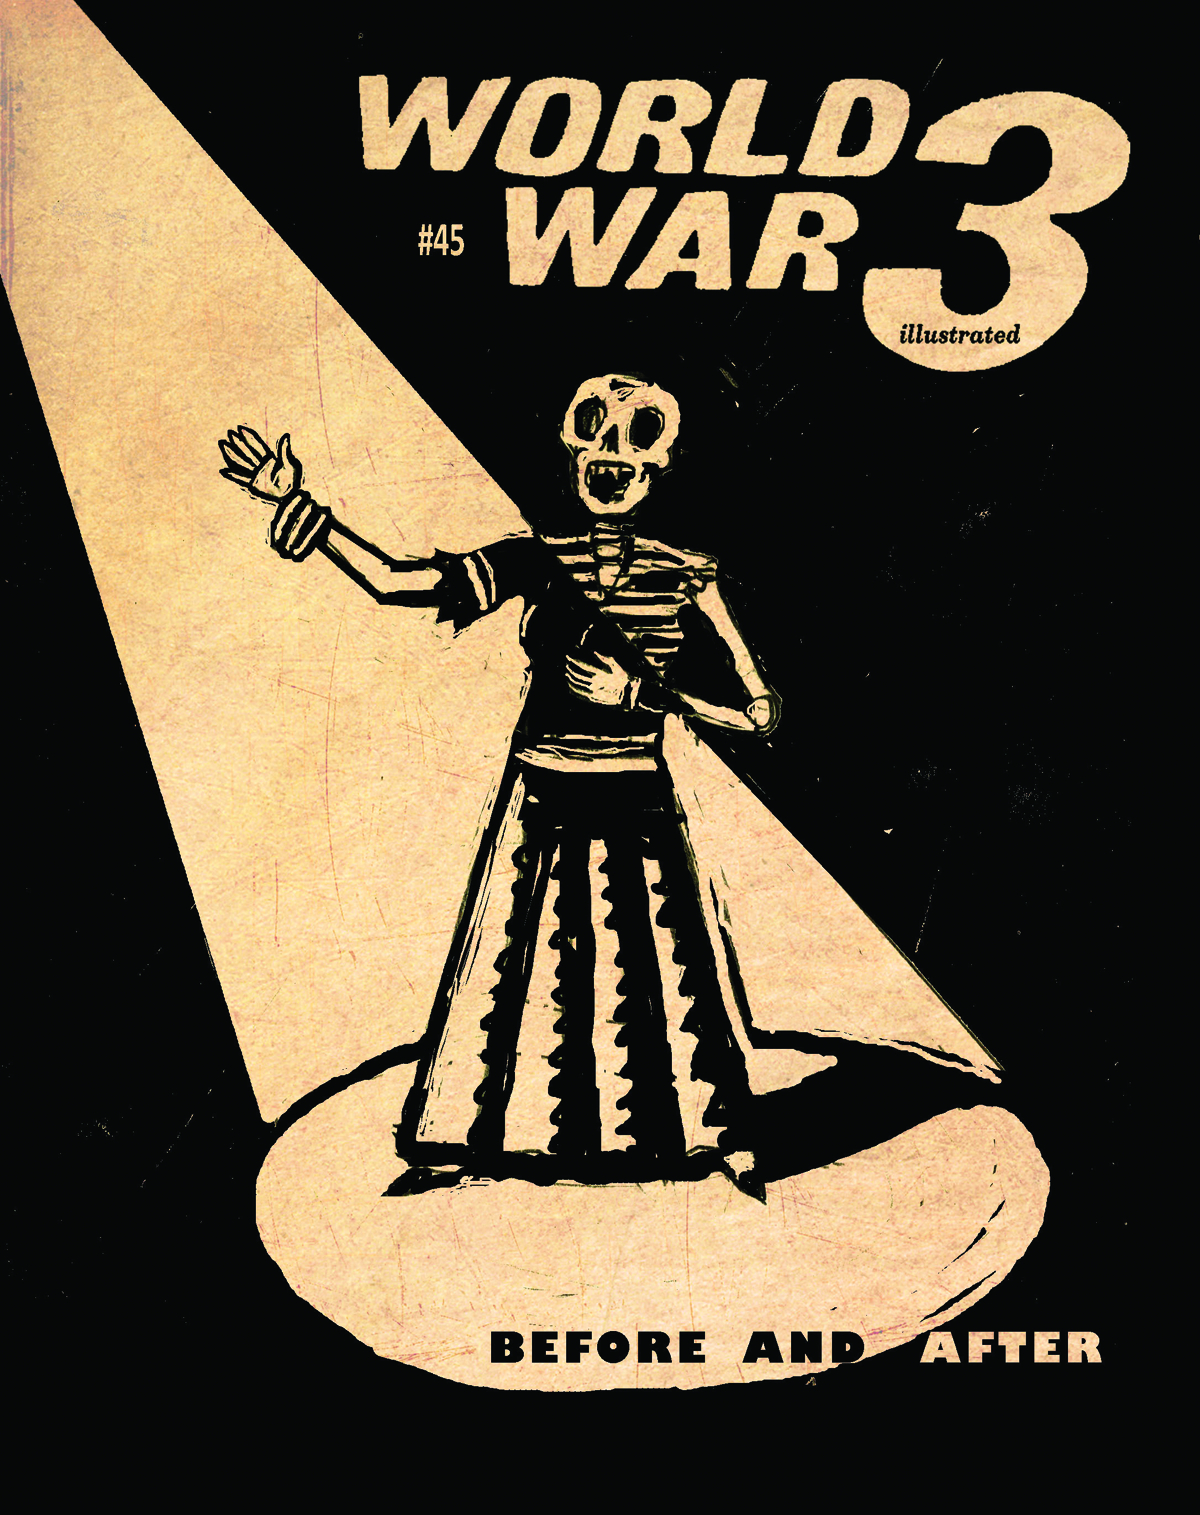 WORLD WAR 3 ILLUSTRATED #45